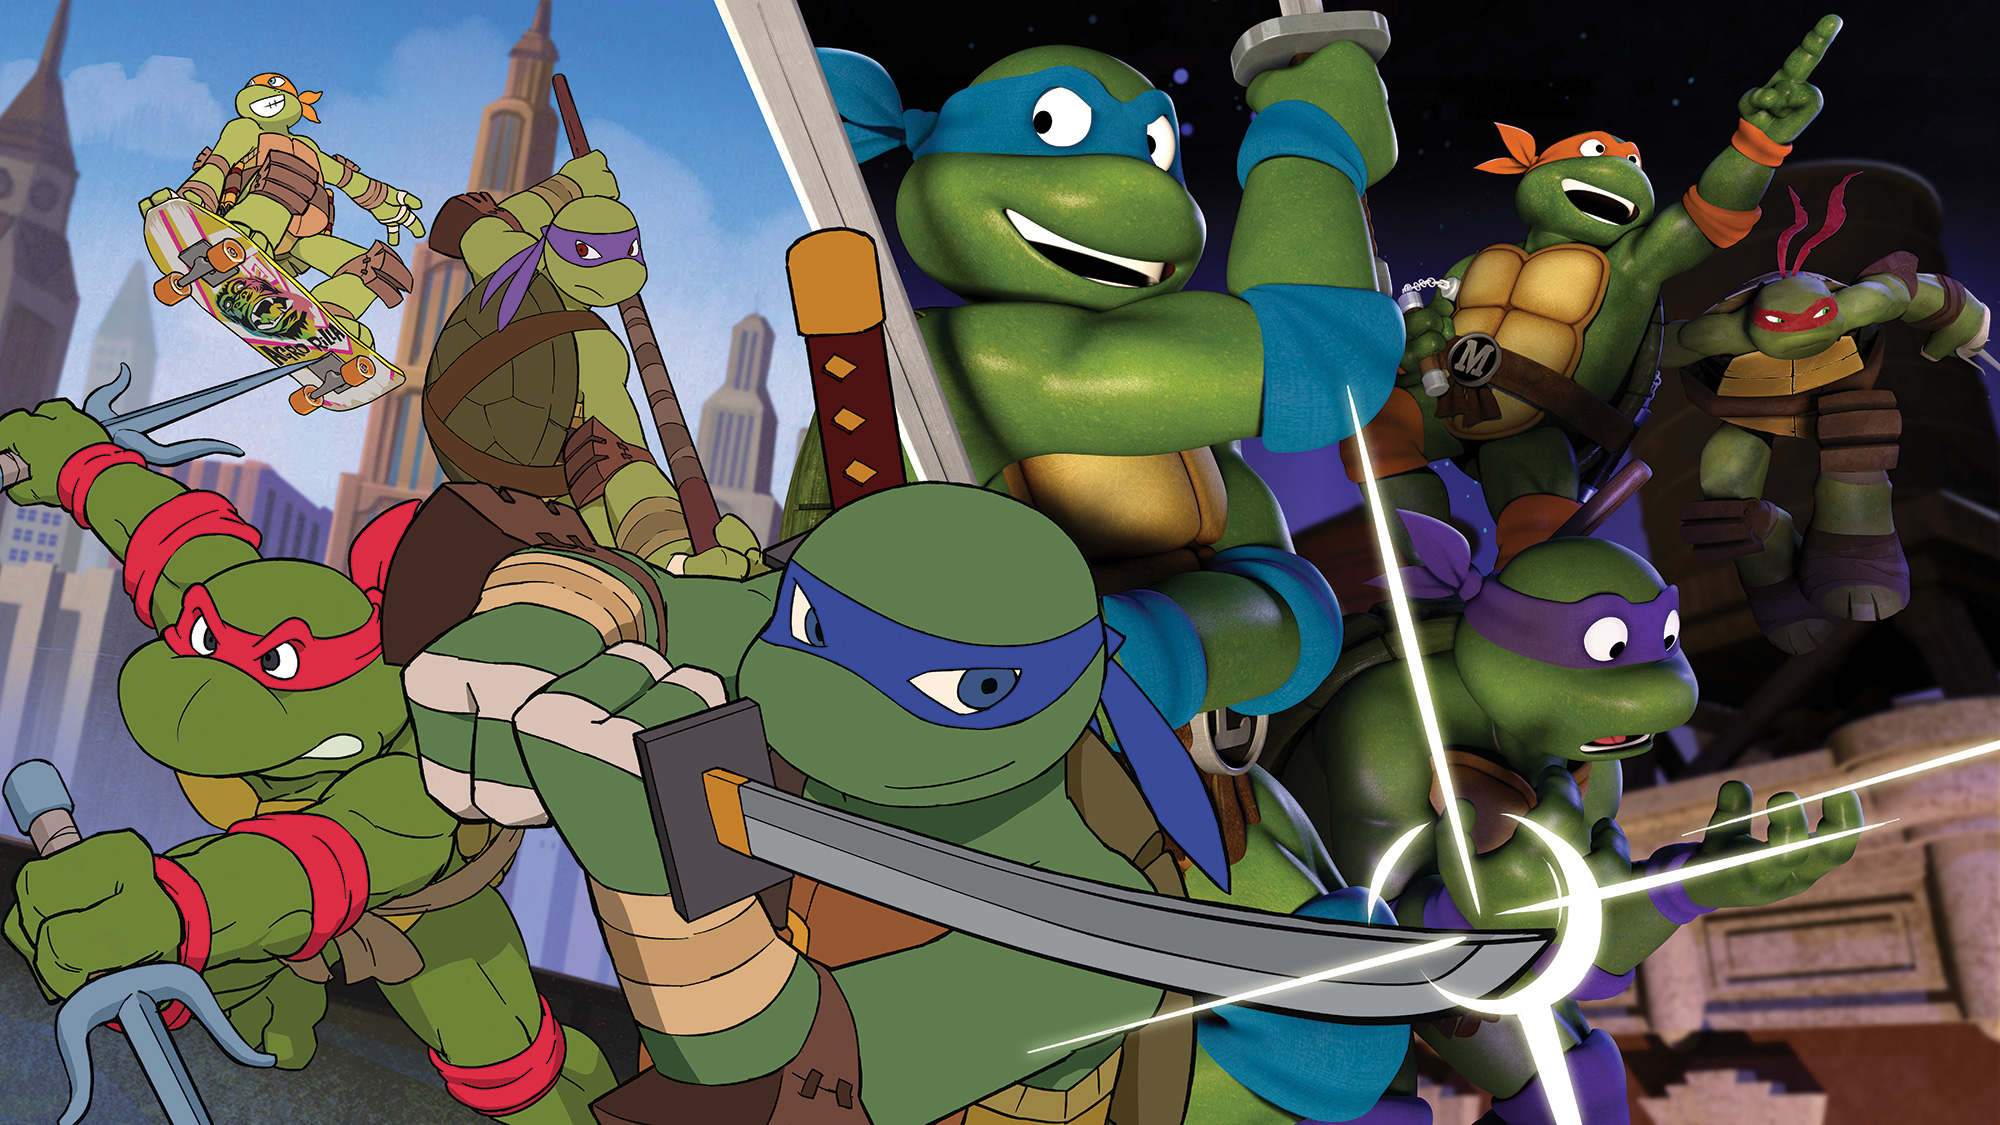 Ninja Turtles: In Memoriam